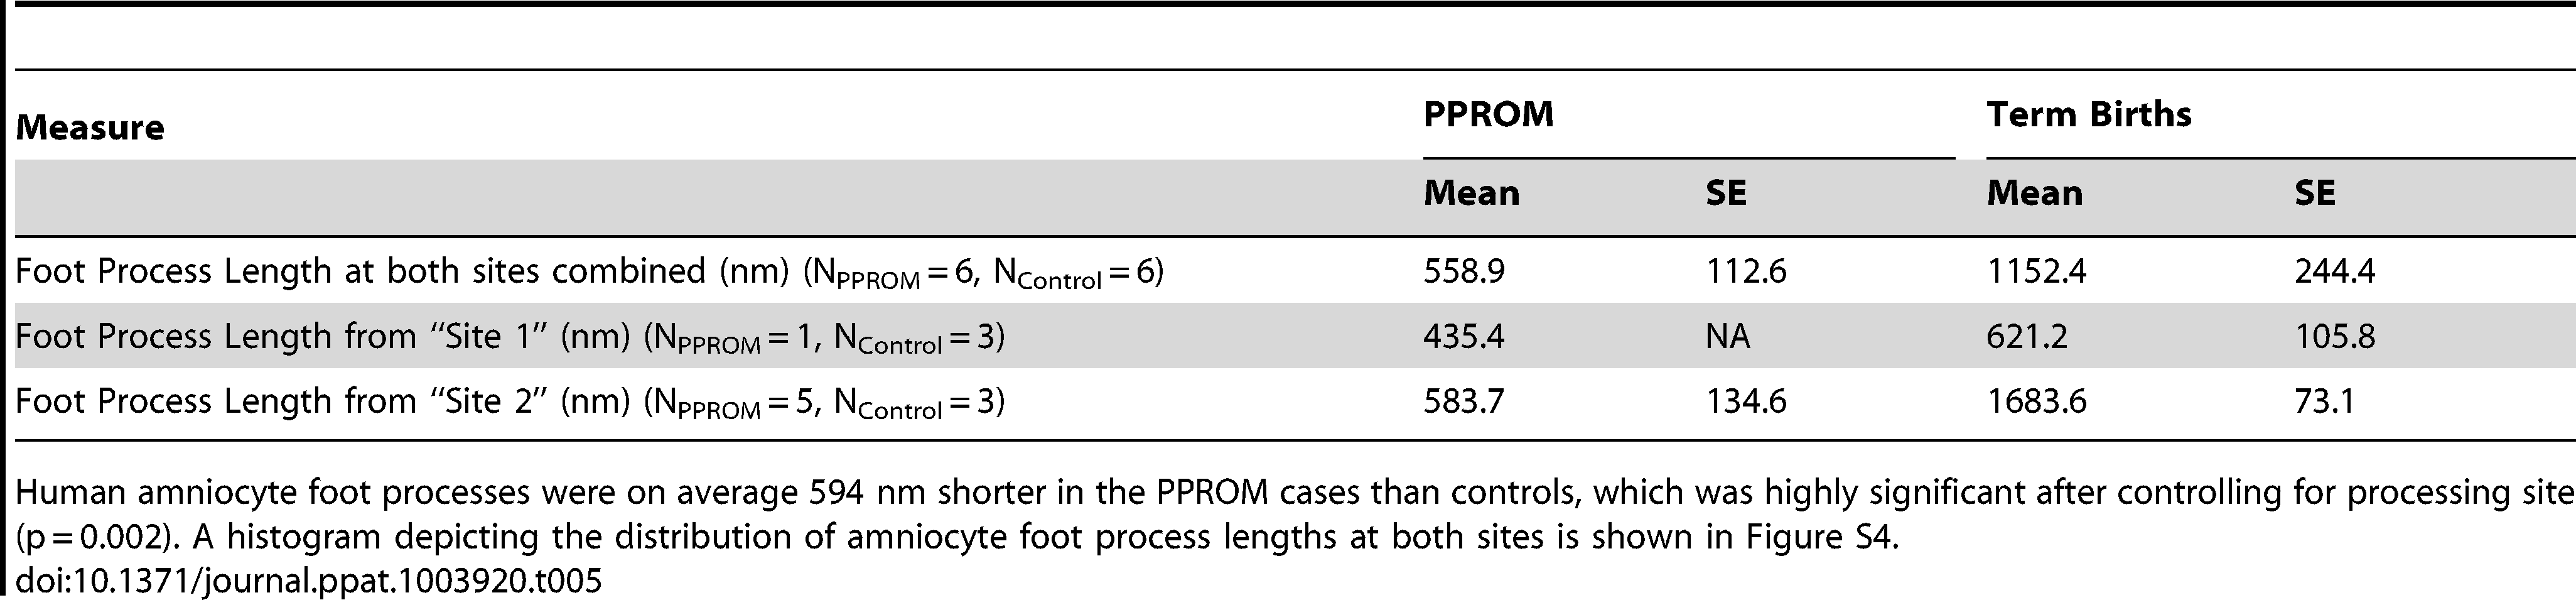 Amniocyte foot process length.